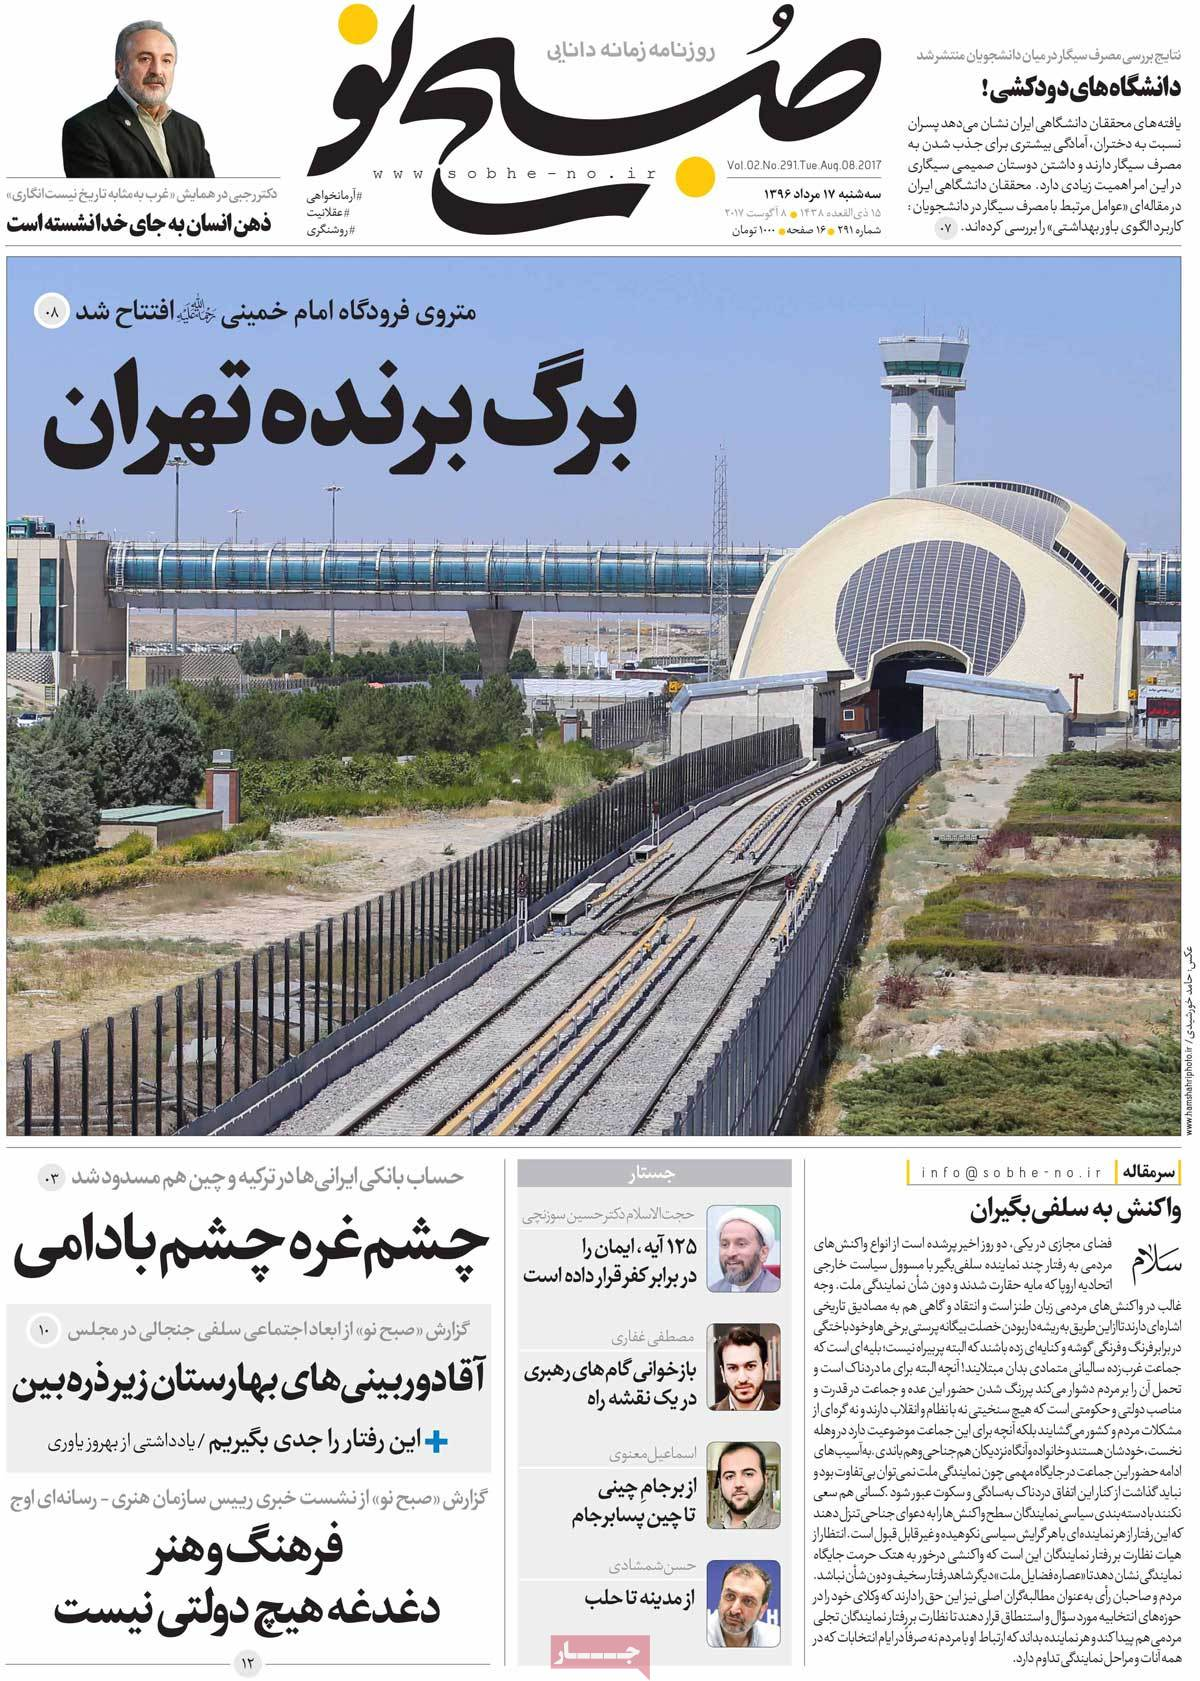 A Look at Iranian Newspaper Front Pages on August 8 - sobheno